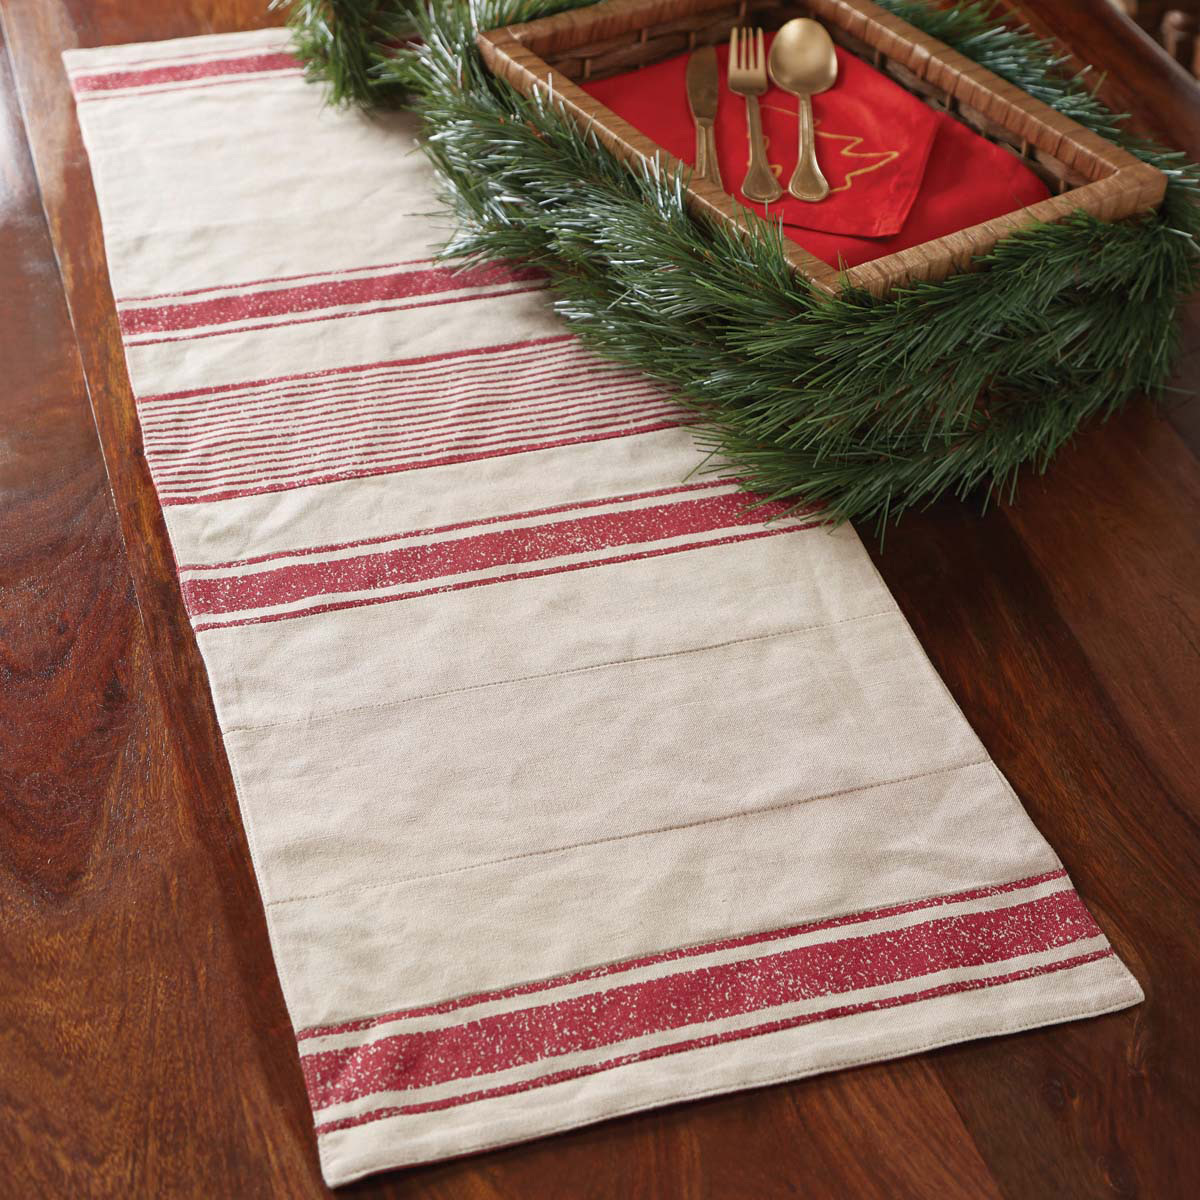 sebastian farmhouse christmas 36 inch table runner the weed patch. Black Bedroom Furniture Sets. Home Design Ideas